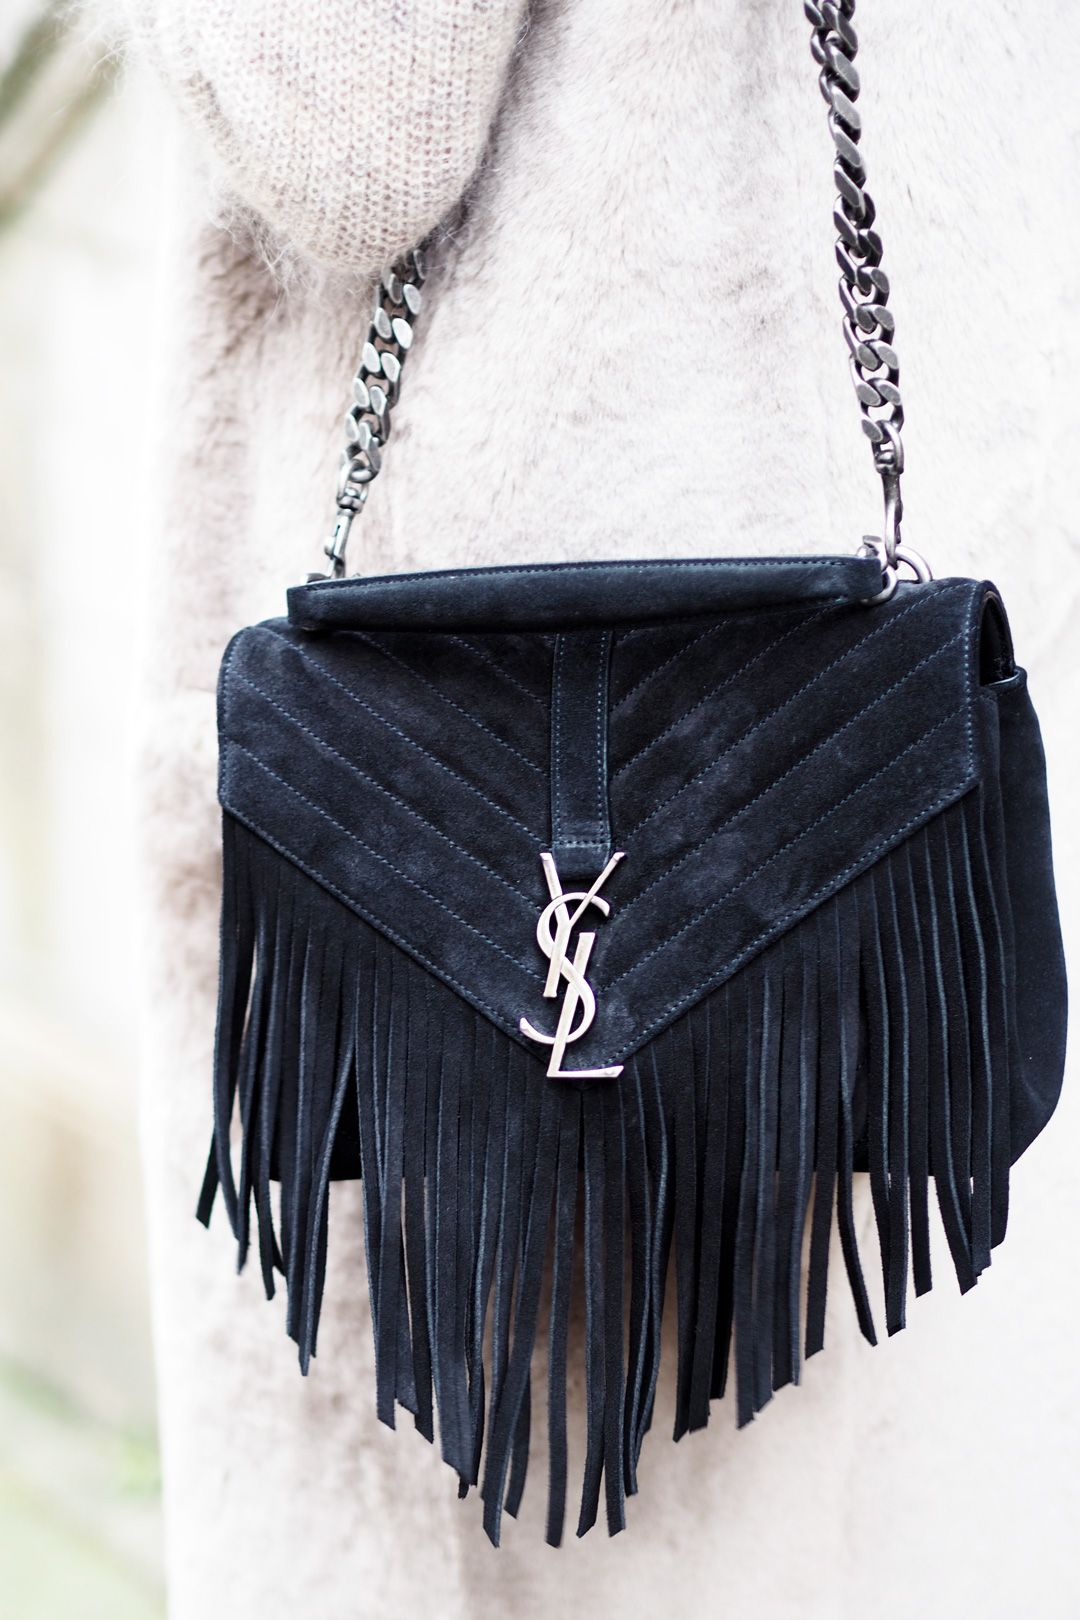 84c388e783db Yves Saint Laurent Monogram Serpent Medium Fringed Leather Shoulder Bag in  Suede